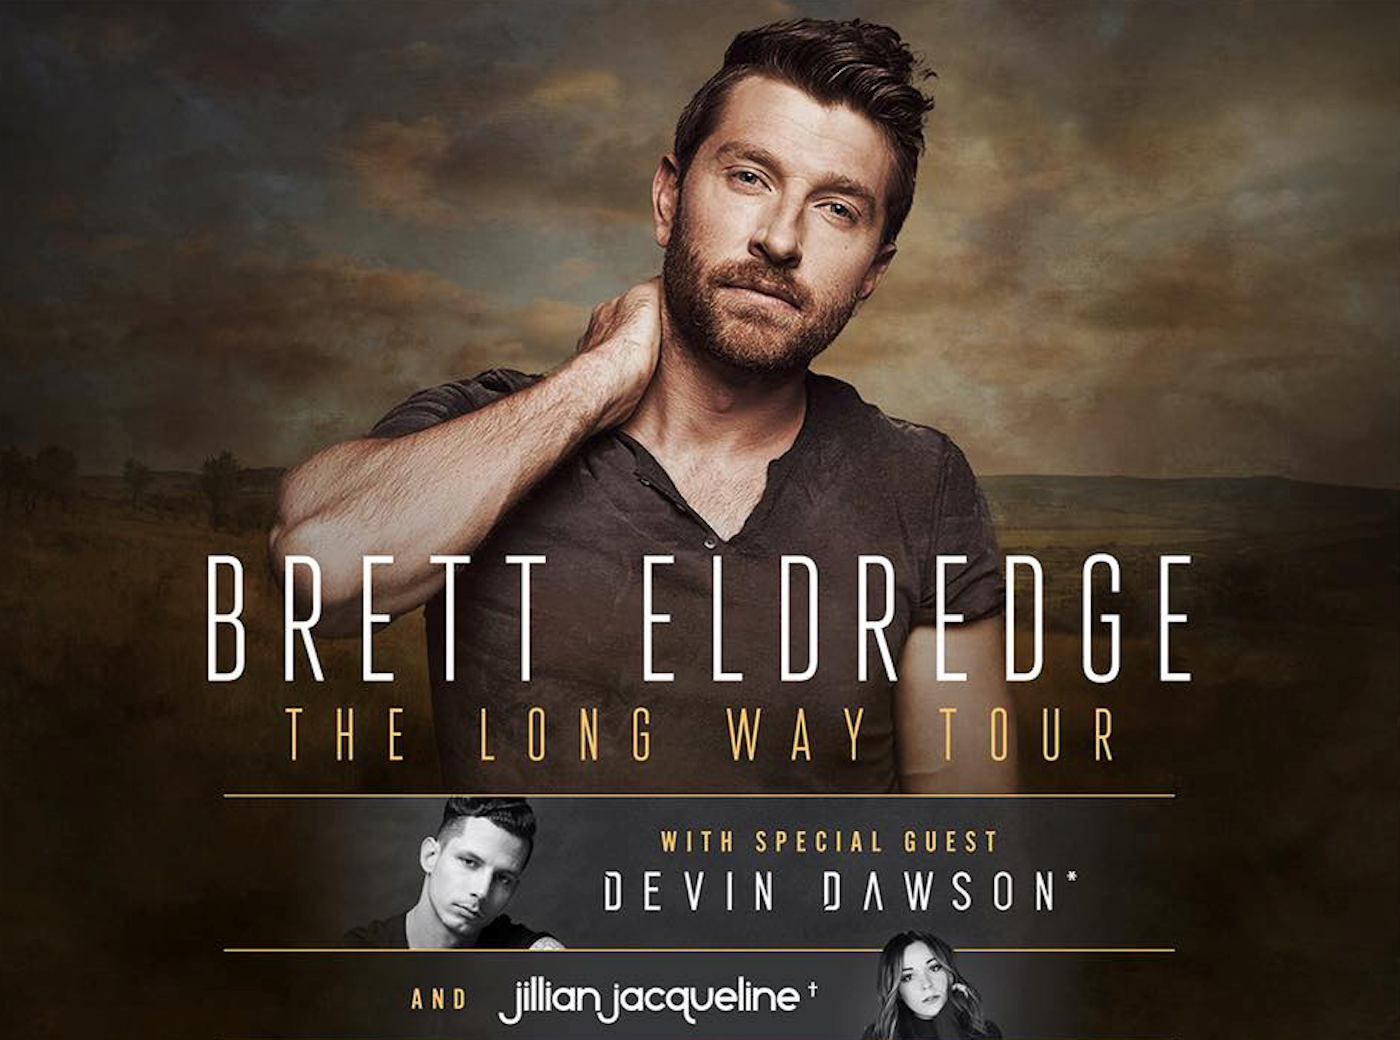 Brett Eldredge announces first headlining tour for 2018